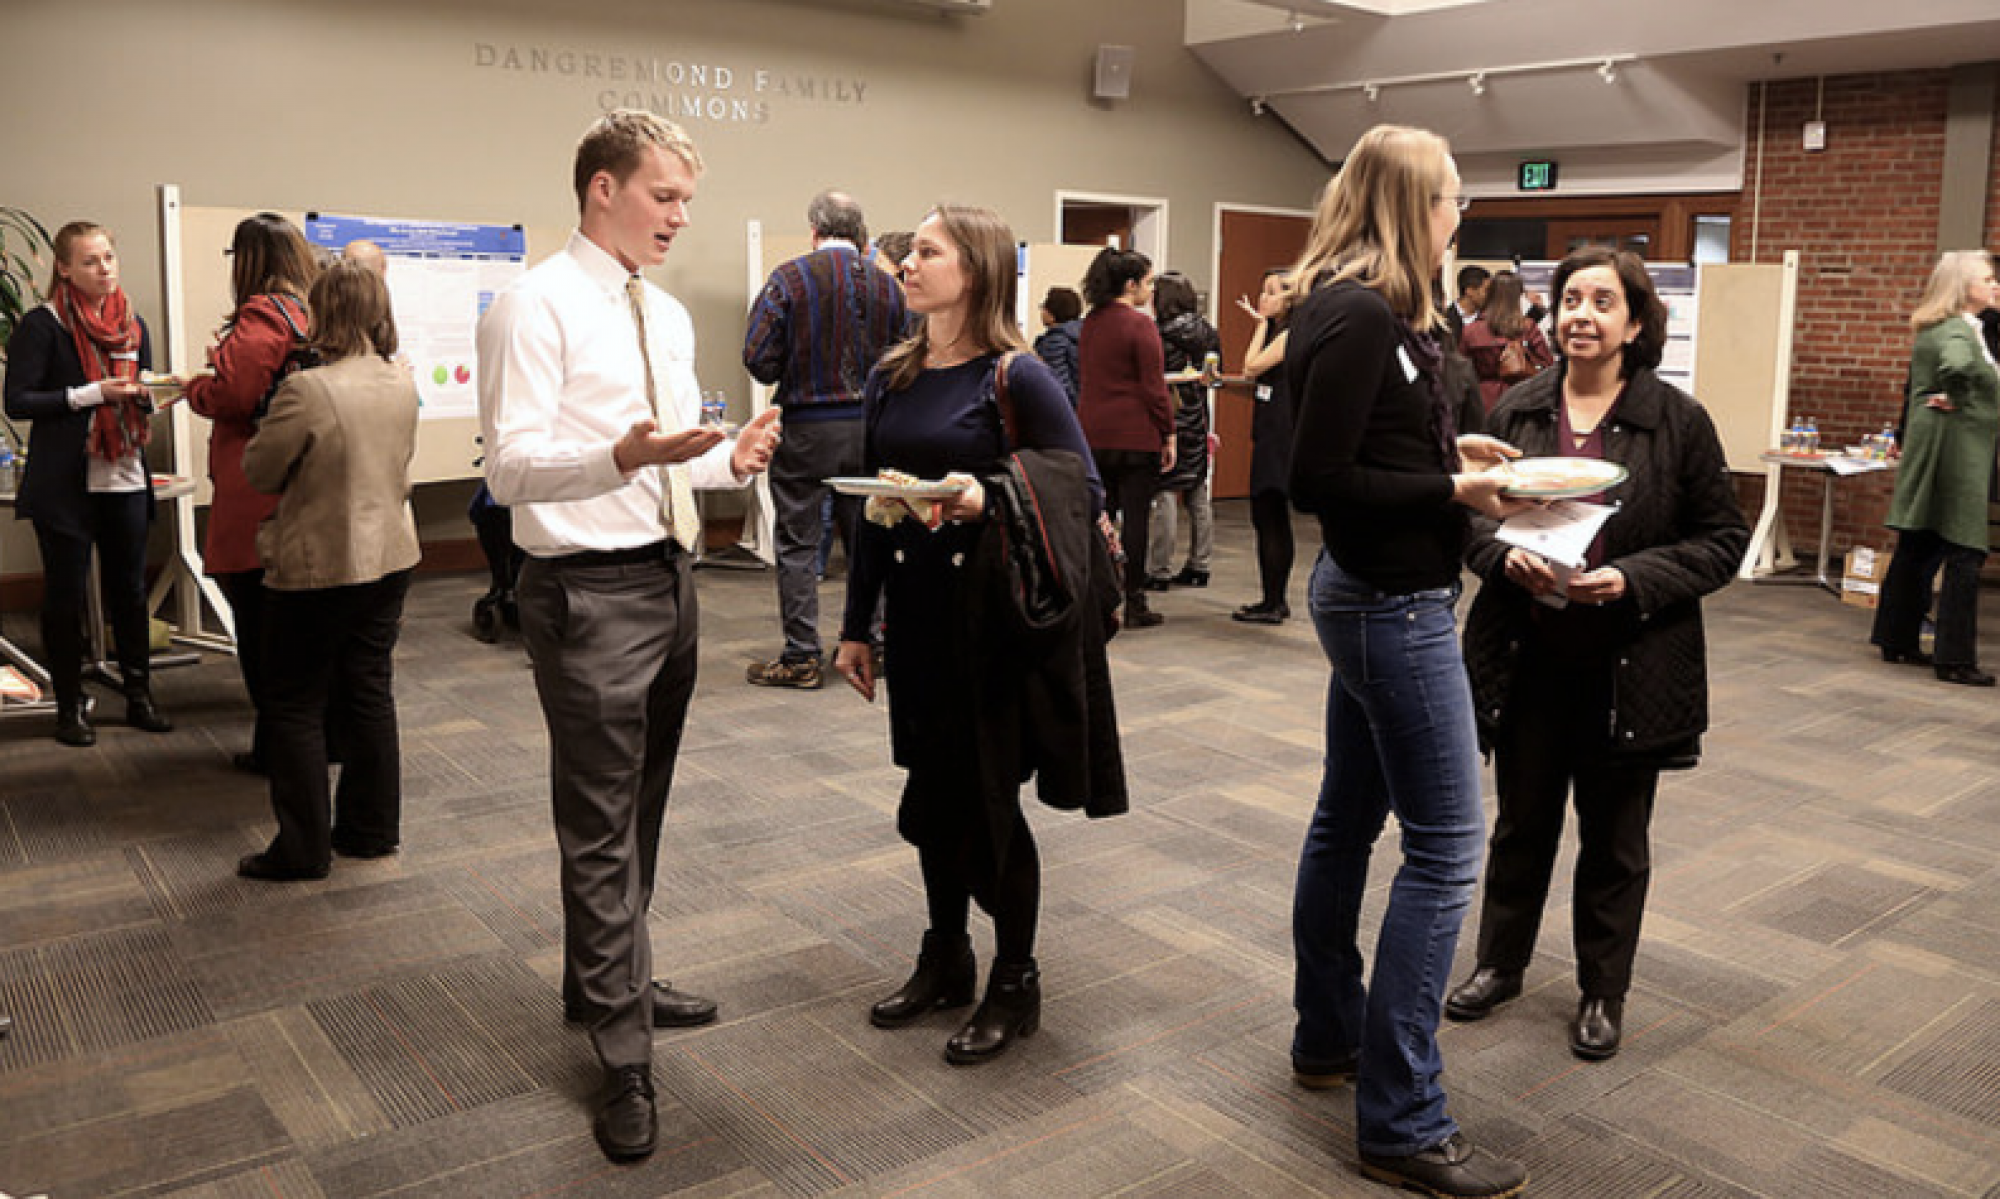 Students and Faculty converse during a research poster session